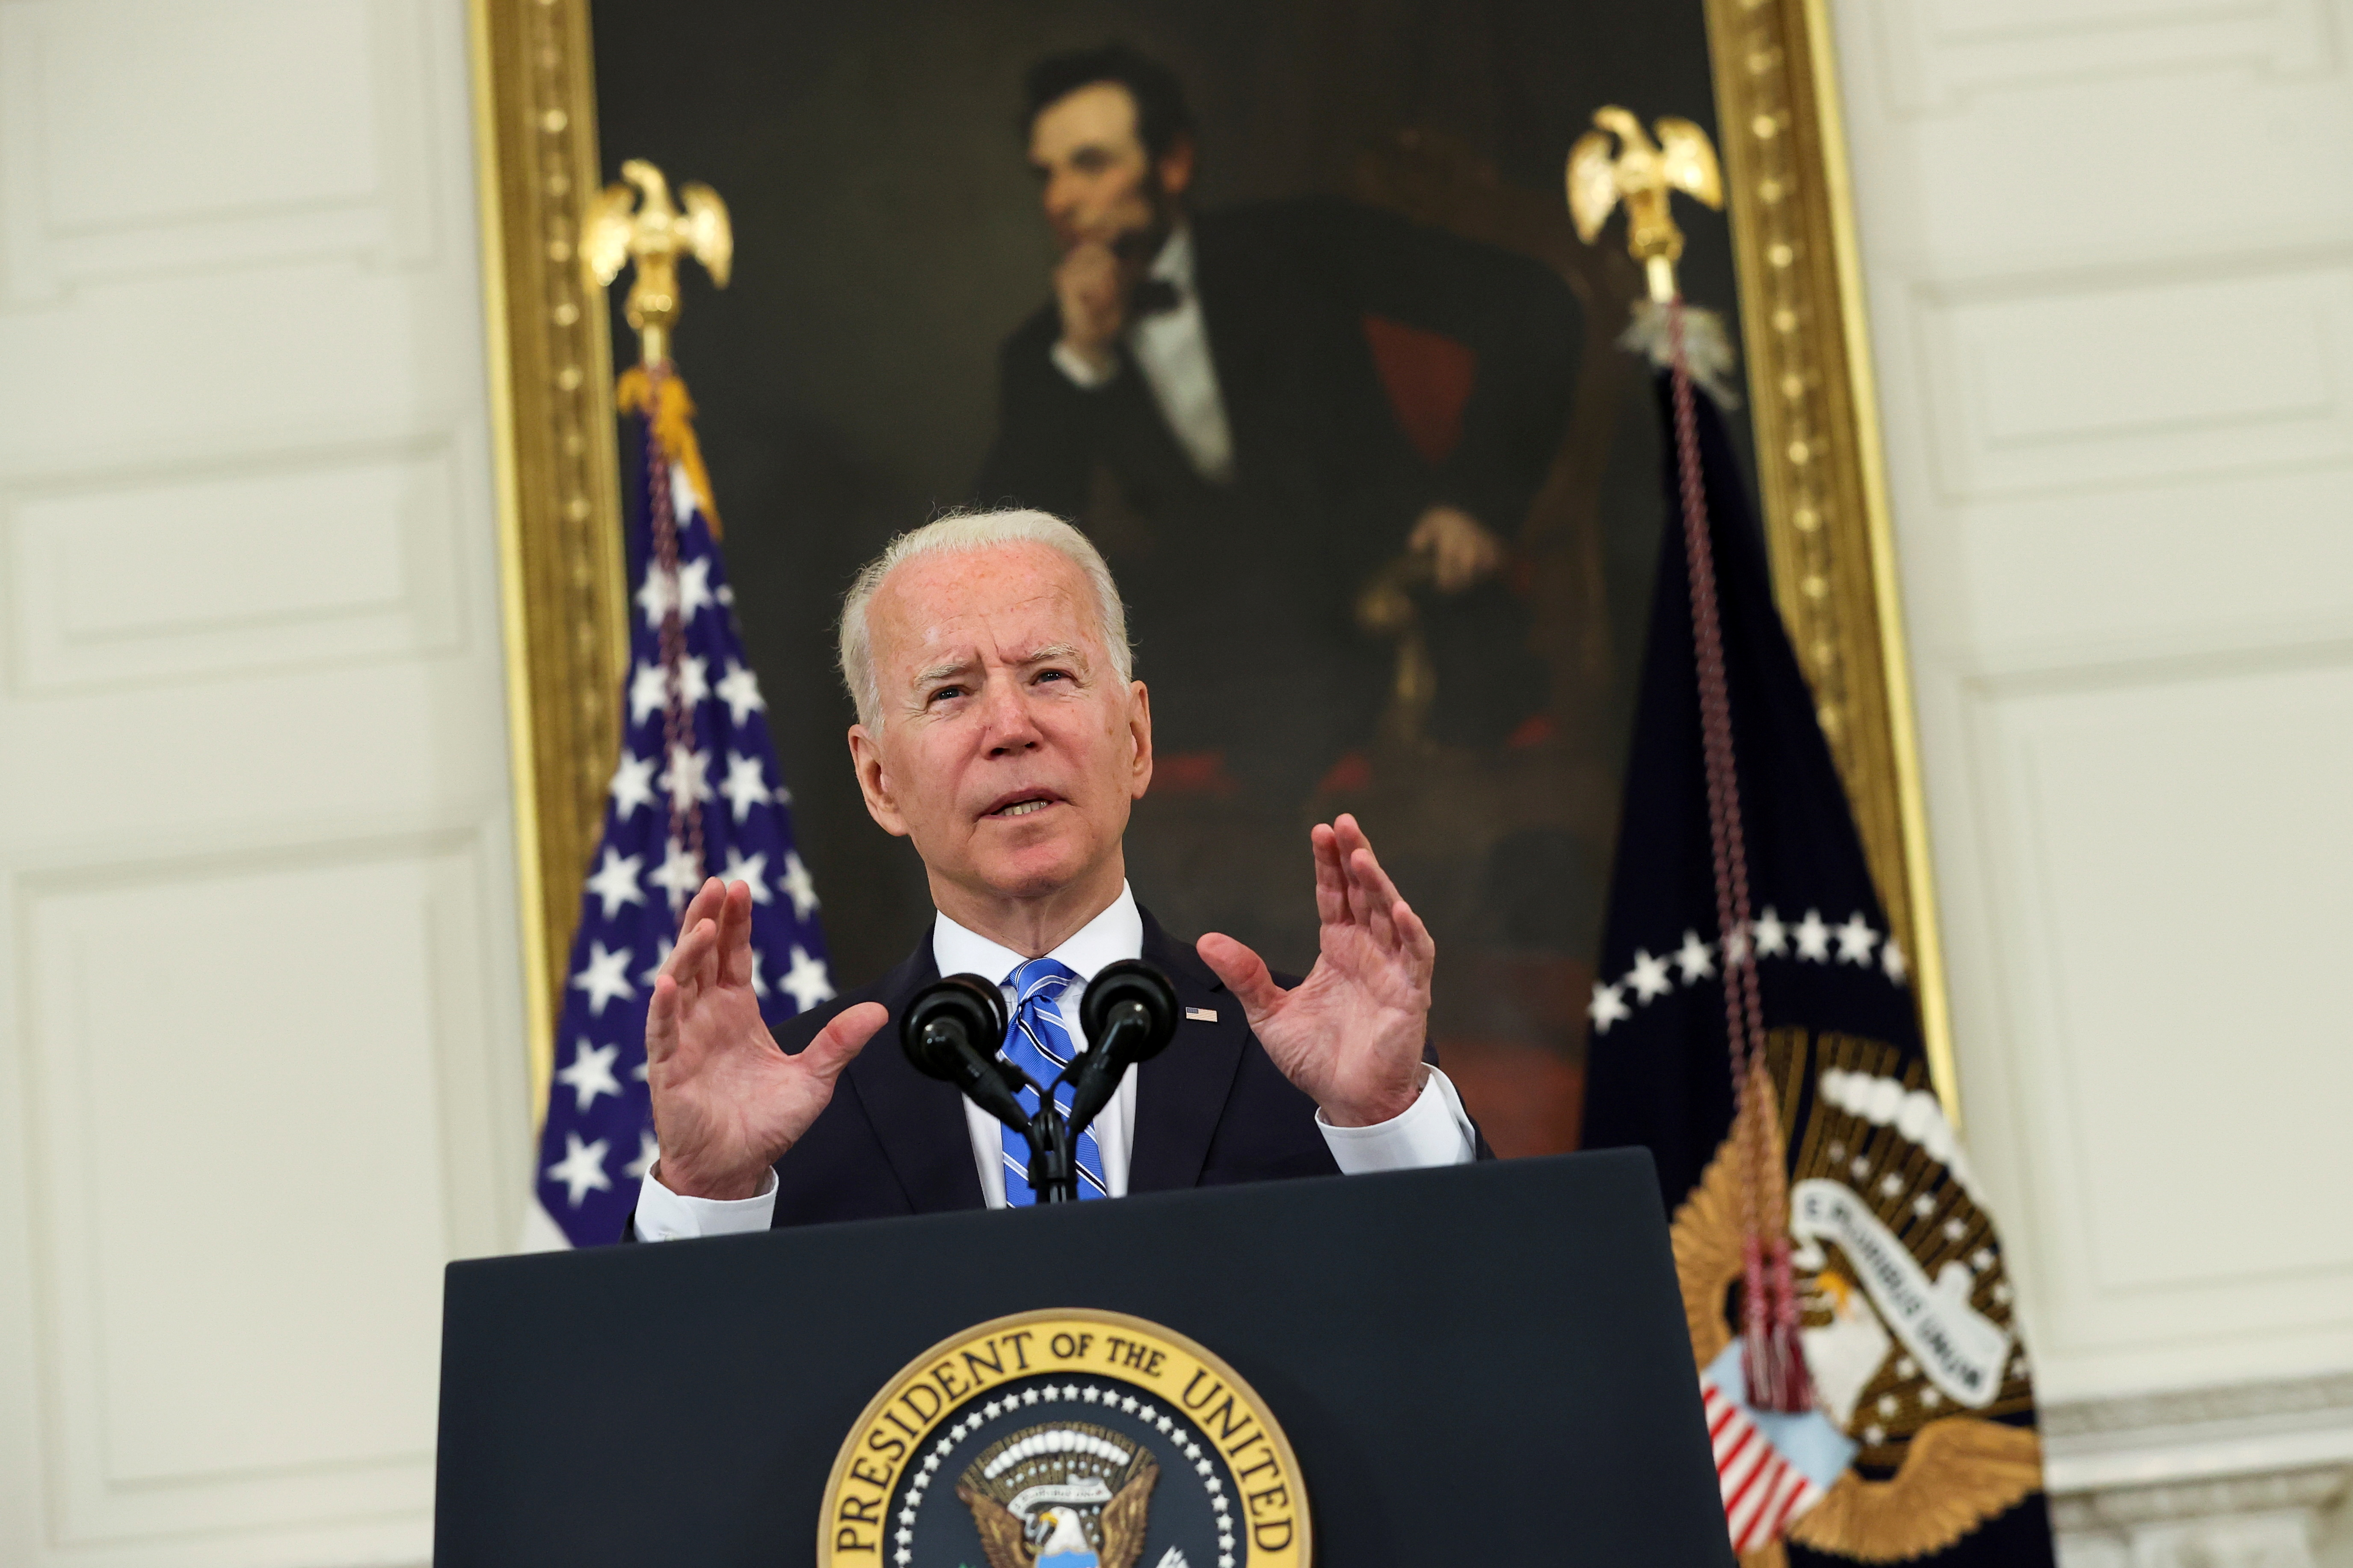 U.S. President Joe Biden delivers remarks on the economy from the White House in Washington, U.S. July 19, 2021. REUTERS/Jonathan Ernst/File Photo